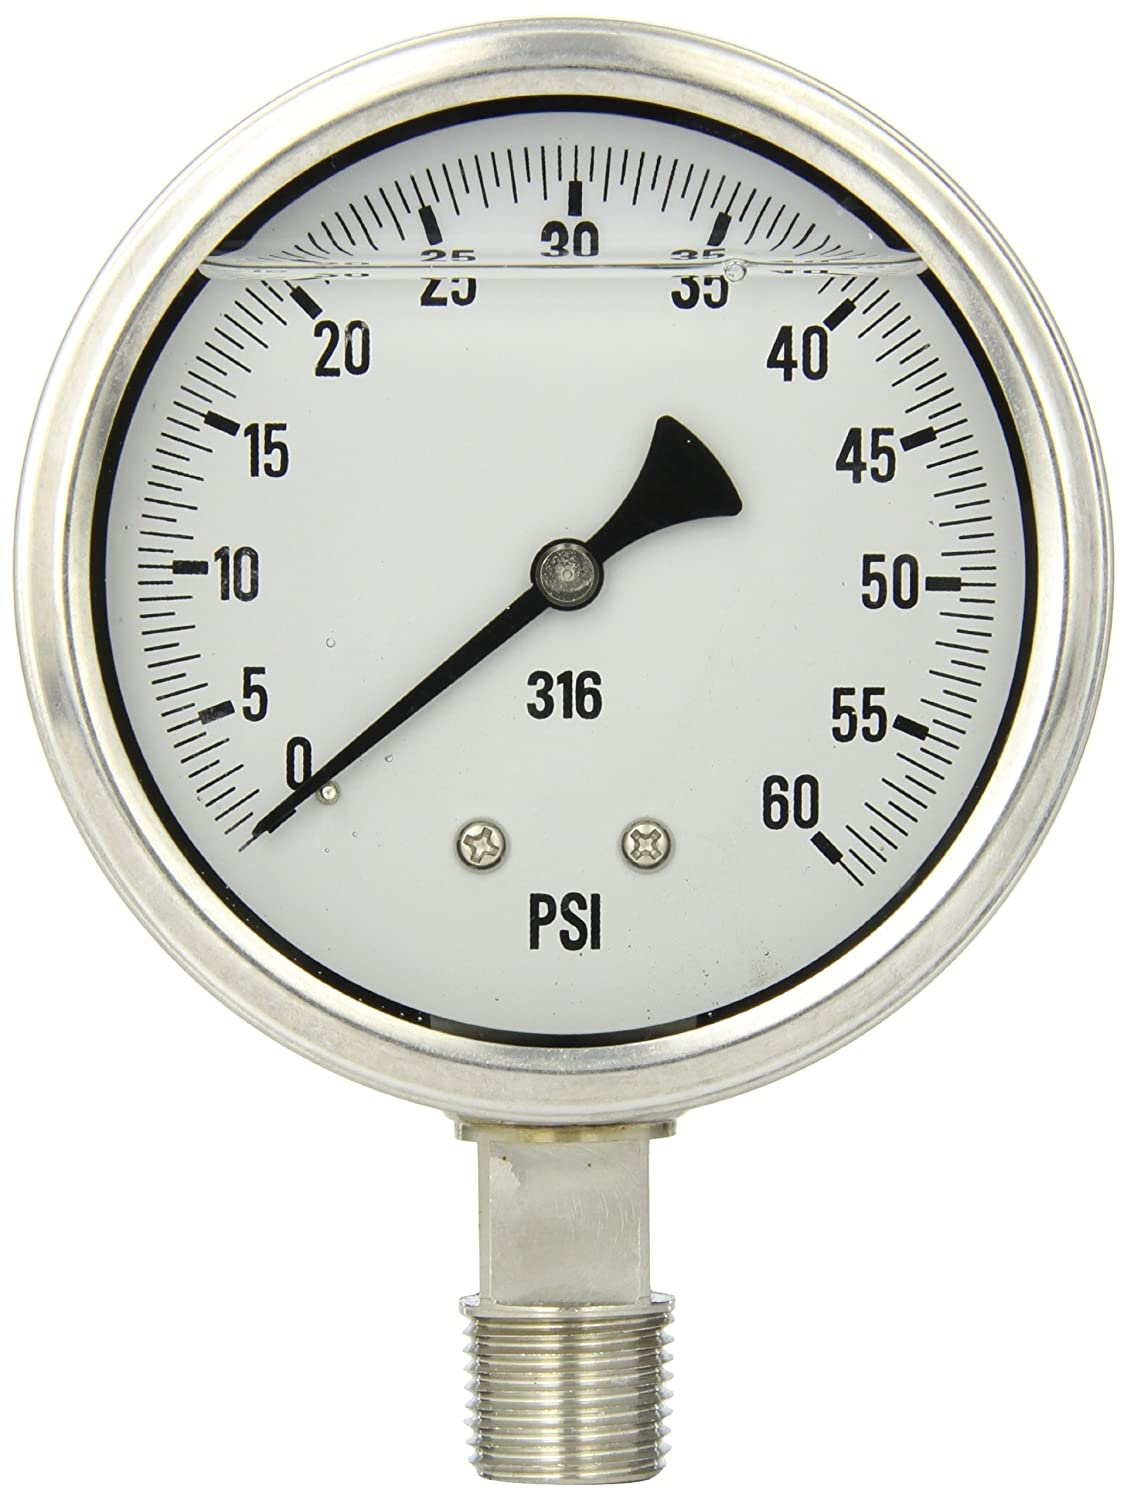 1//2 Male NPT Connection Size PIC Gauge S301L-402D 4 Dial Stainless Steel Bezel Bottom Mount Single Scale Glycerine Filled Pressure Gauge with a Stainless Steel Case and Internals 0//60 psi Range and Polycarbonate Lens 1//2 Male NPT Connection Size